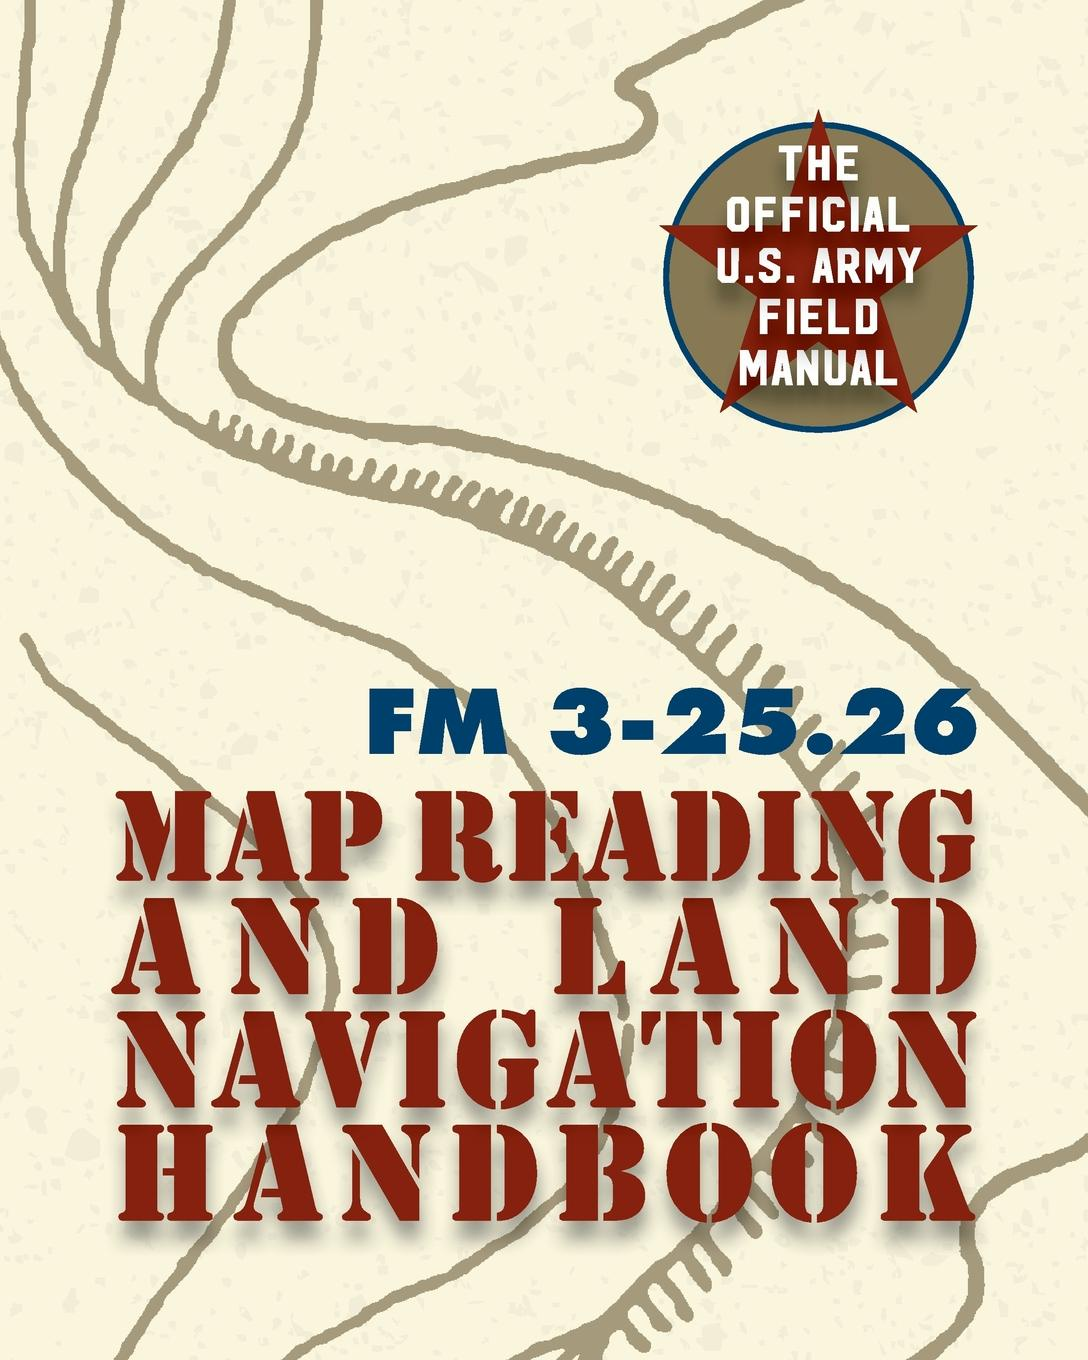 The United States Army Army Field Manual FM 3-25.26 (U.S. Army Map Reading and Land Navigation Handbook) helju pets meelespead isbn 9789949278367